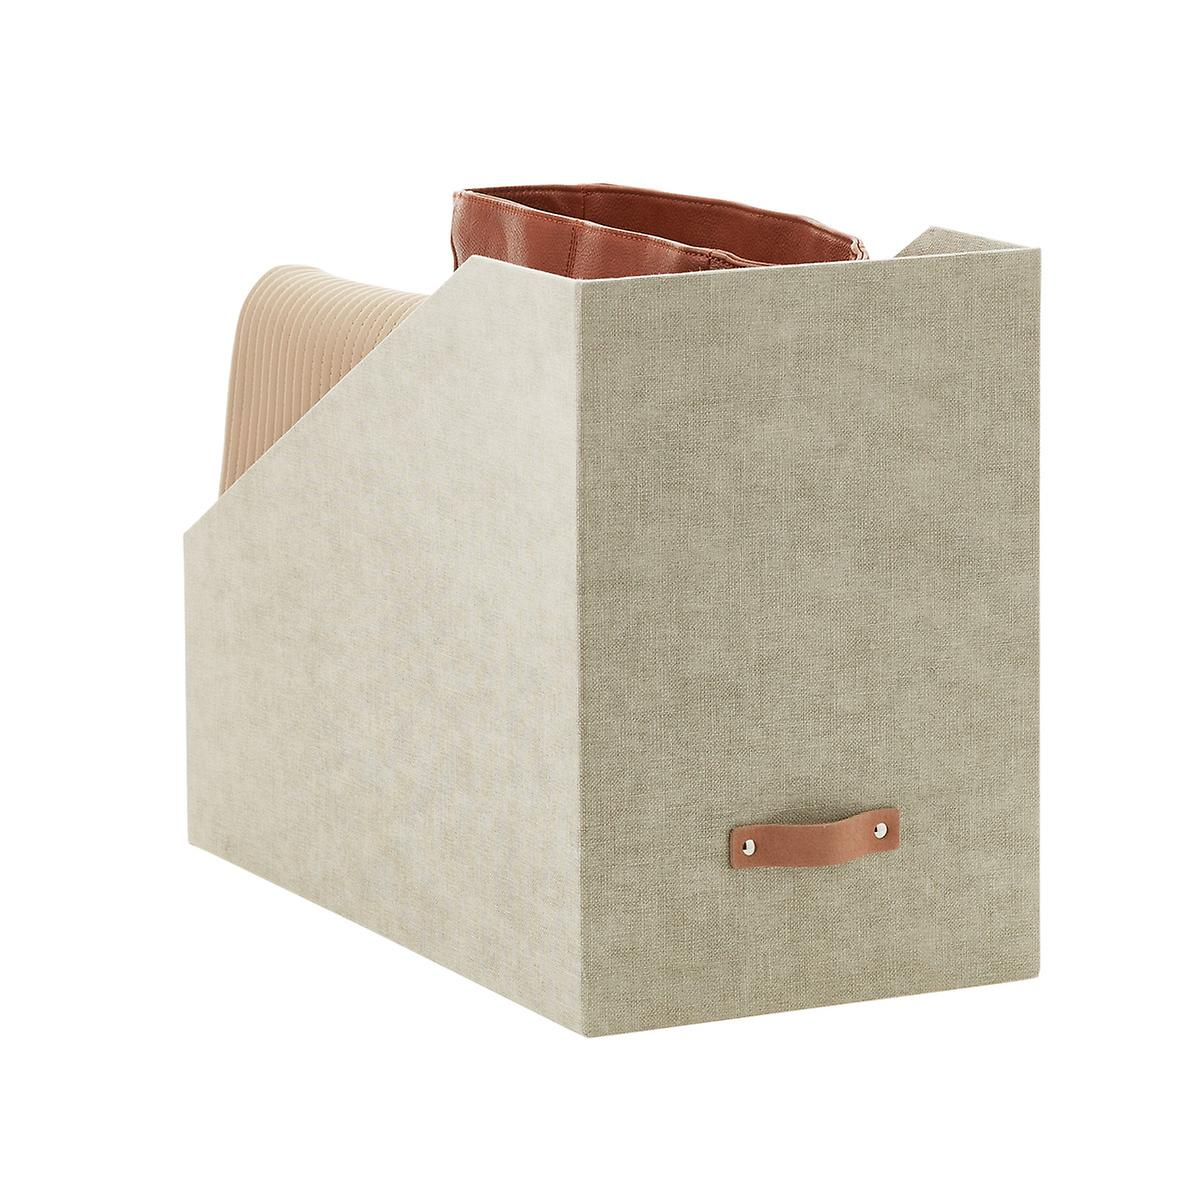 Linen Avera Purse Storage Bins